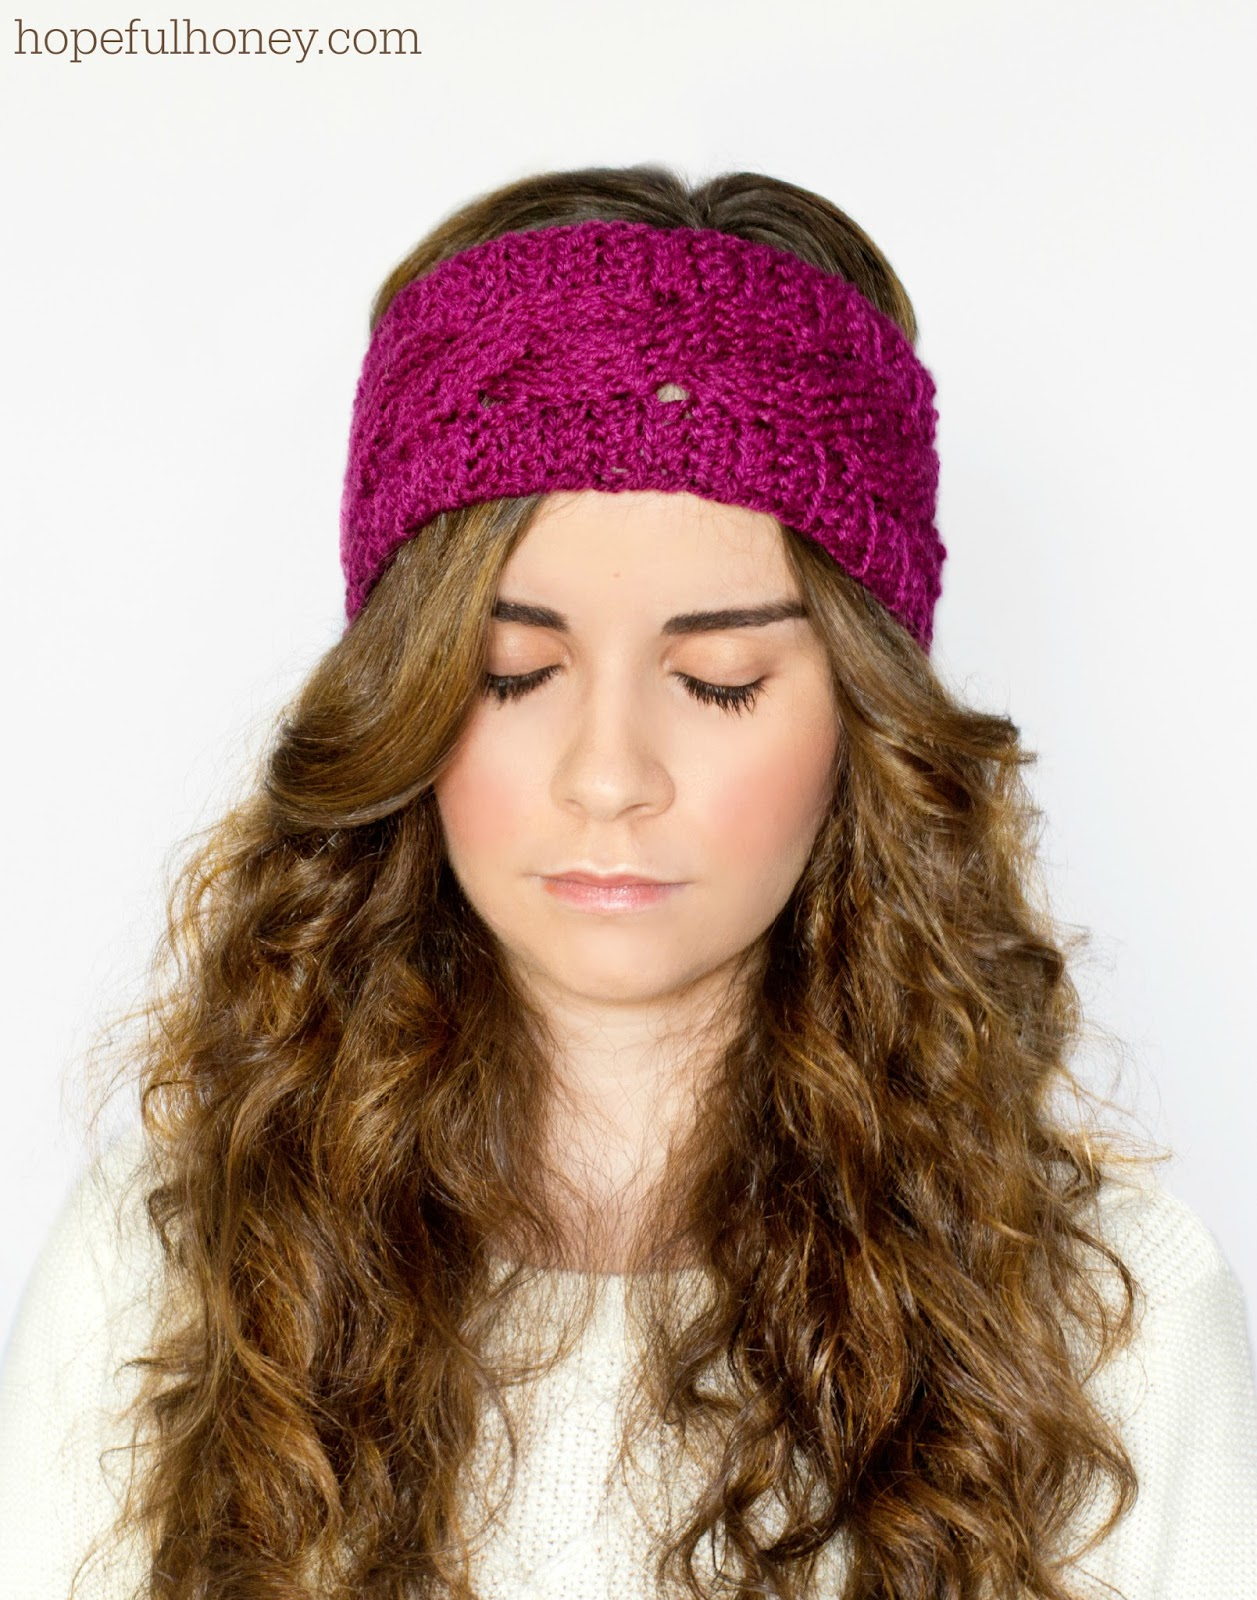 Free Adjustable Crochet Headband Pattern : Hopeful Honey Craft, Crochet, Create: Cabled Earwarmer ...